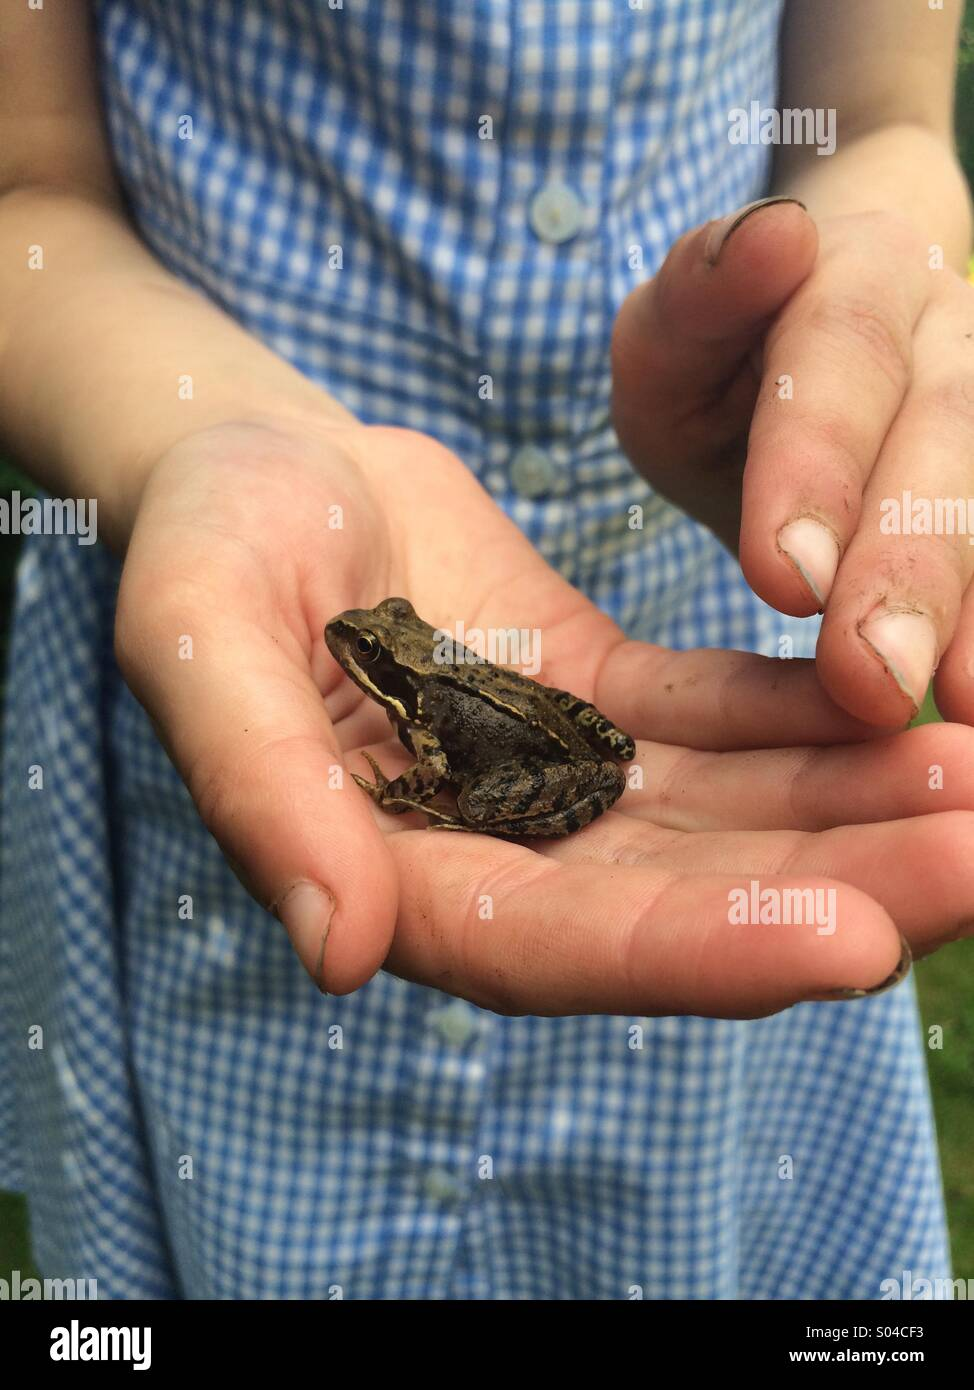 Small 6 year old girl holding a baby frog in her hand. - Stock Image